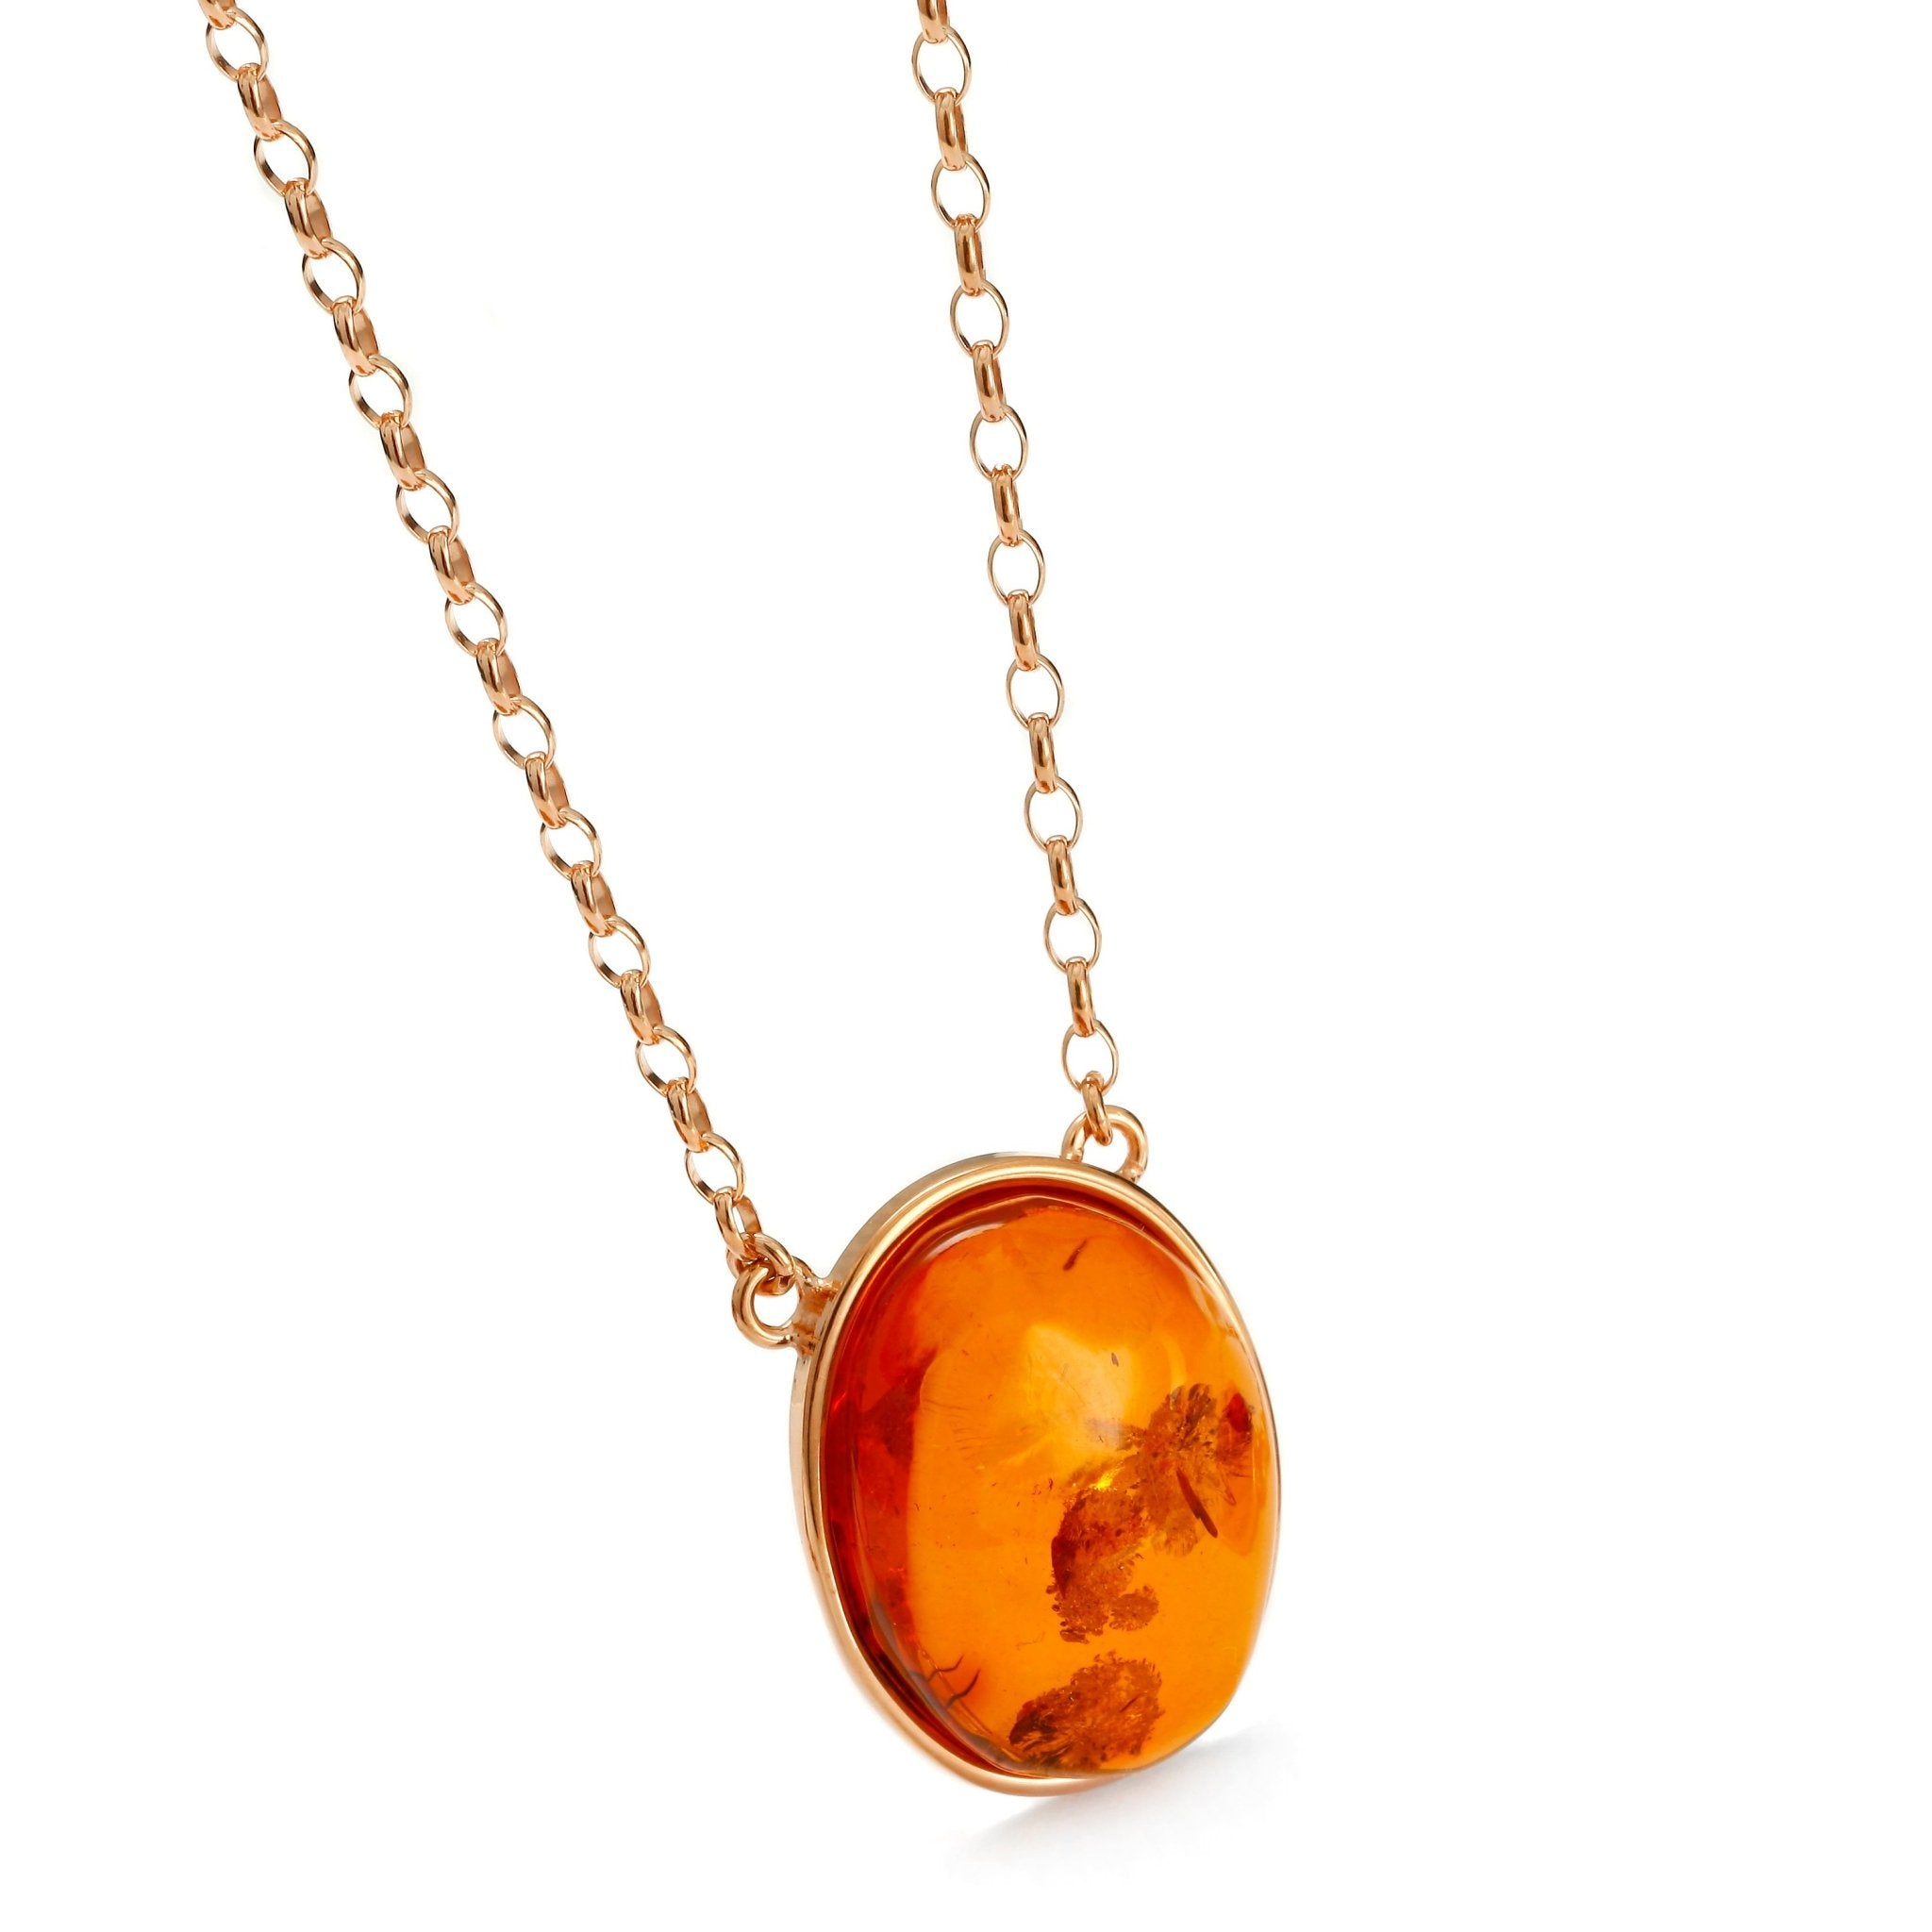 Oval Amulette Cognac Necklace - Koraba